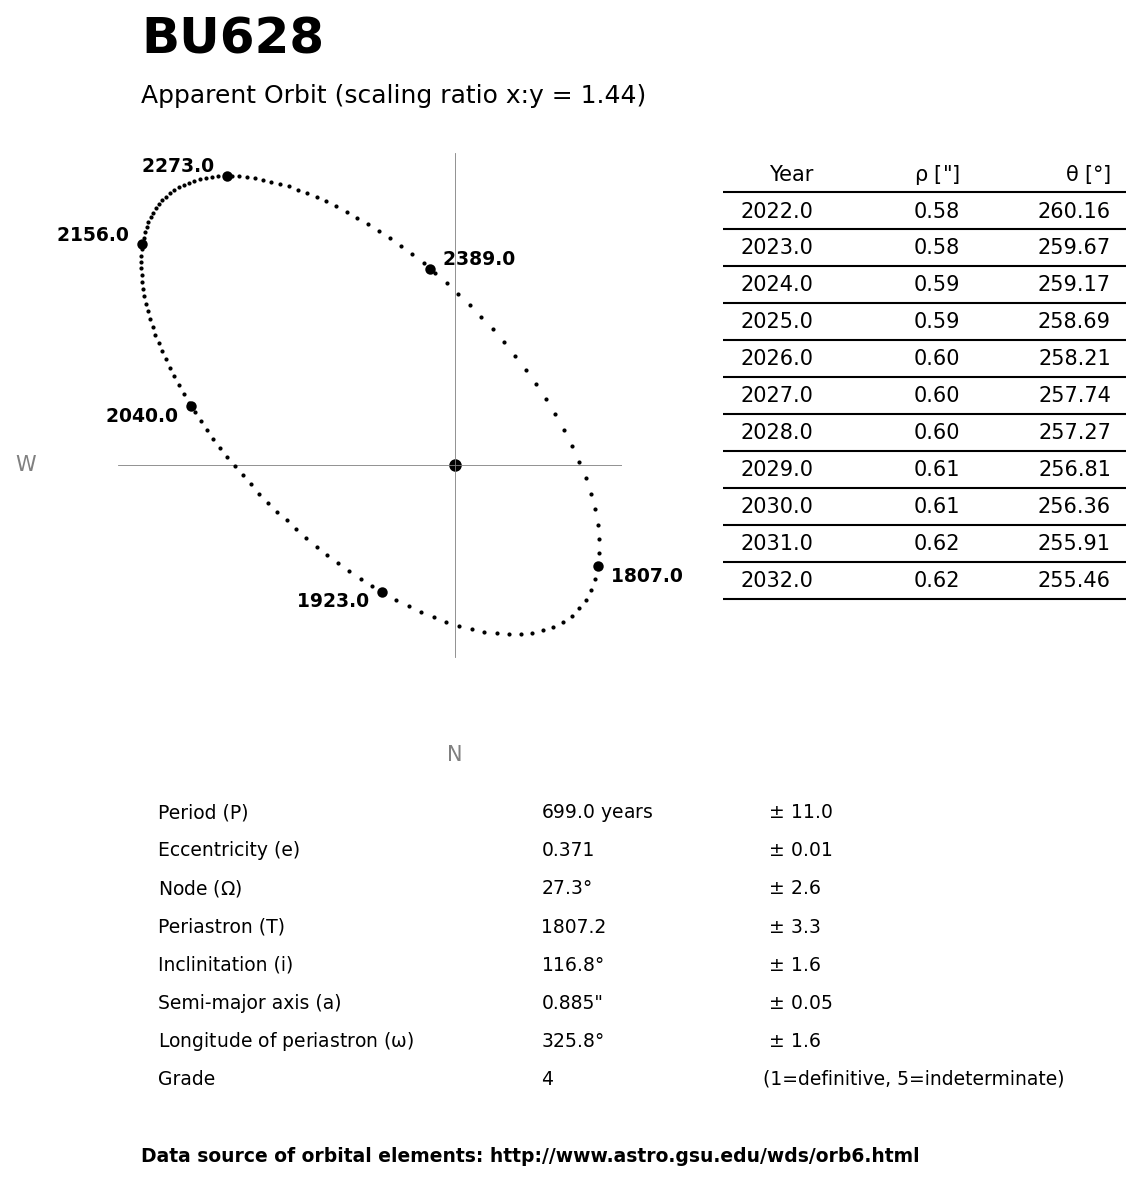 ../images/binary-star-orbits/BU628-orbit.jpg